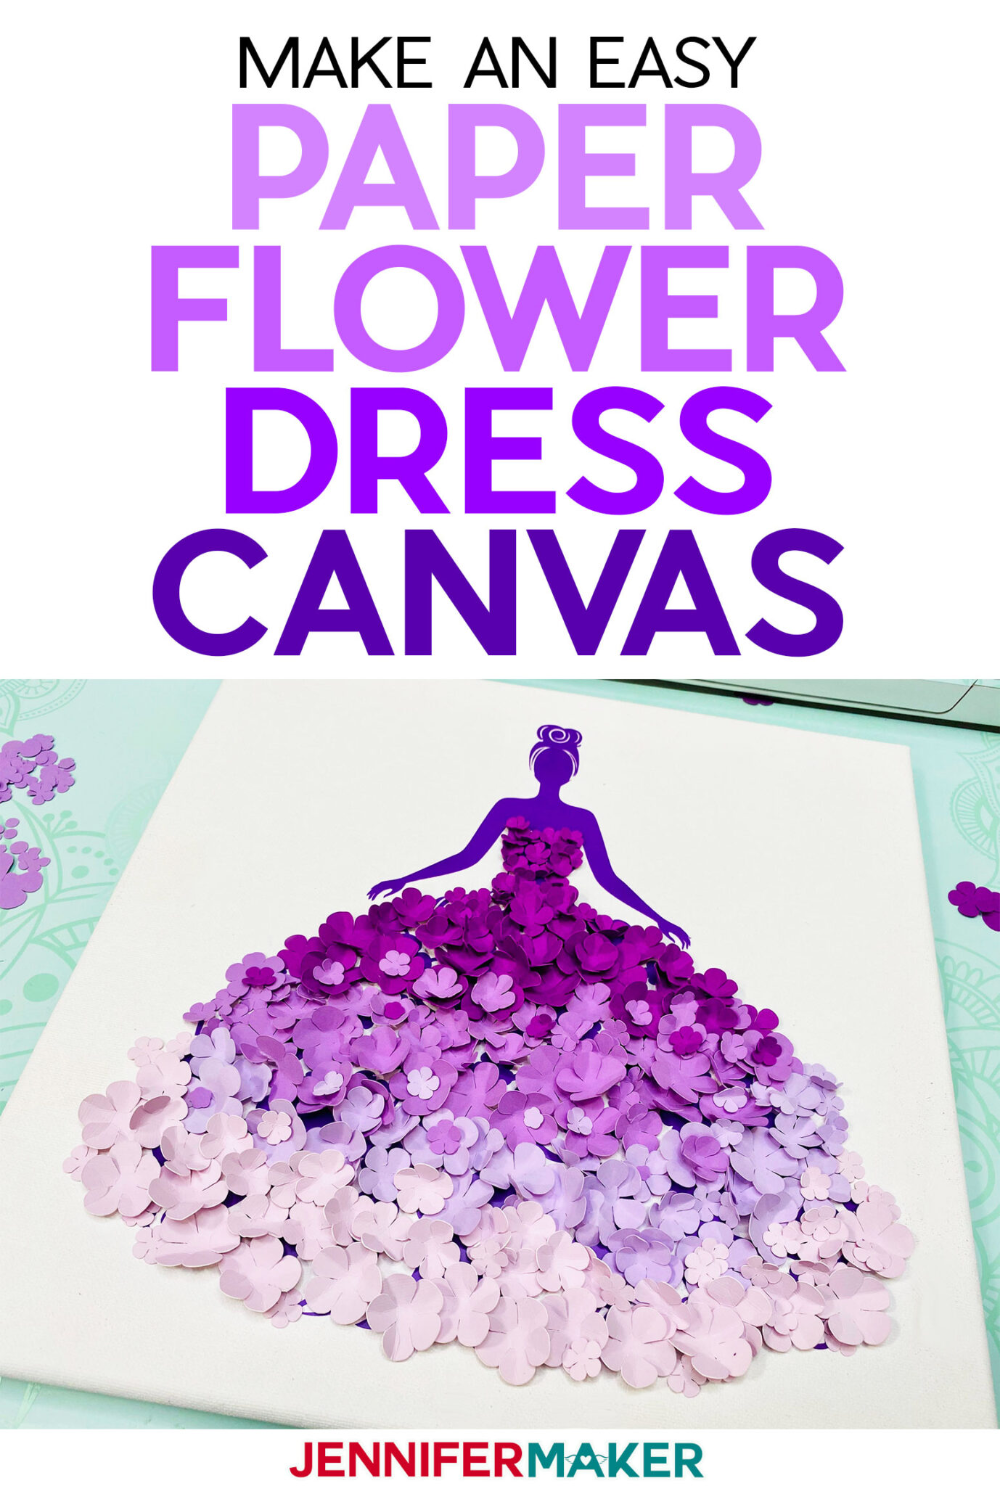 Paper Flower Dress Canvas Wall Art - Jennifer Maker